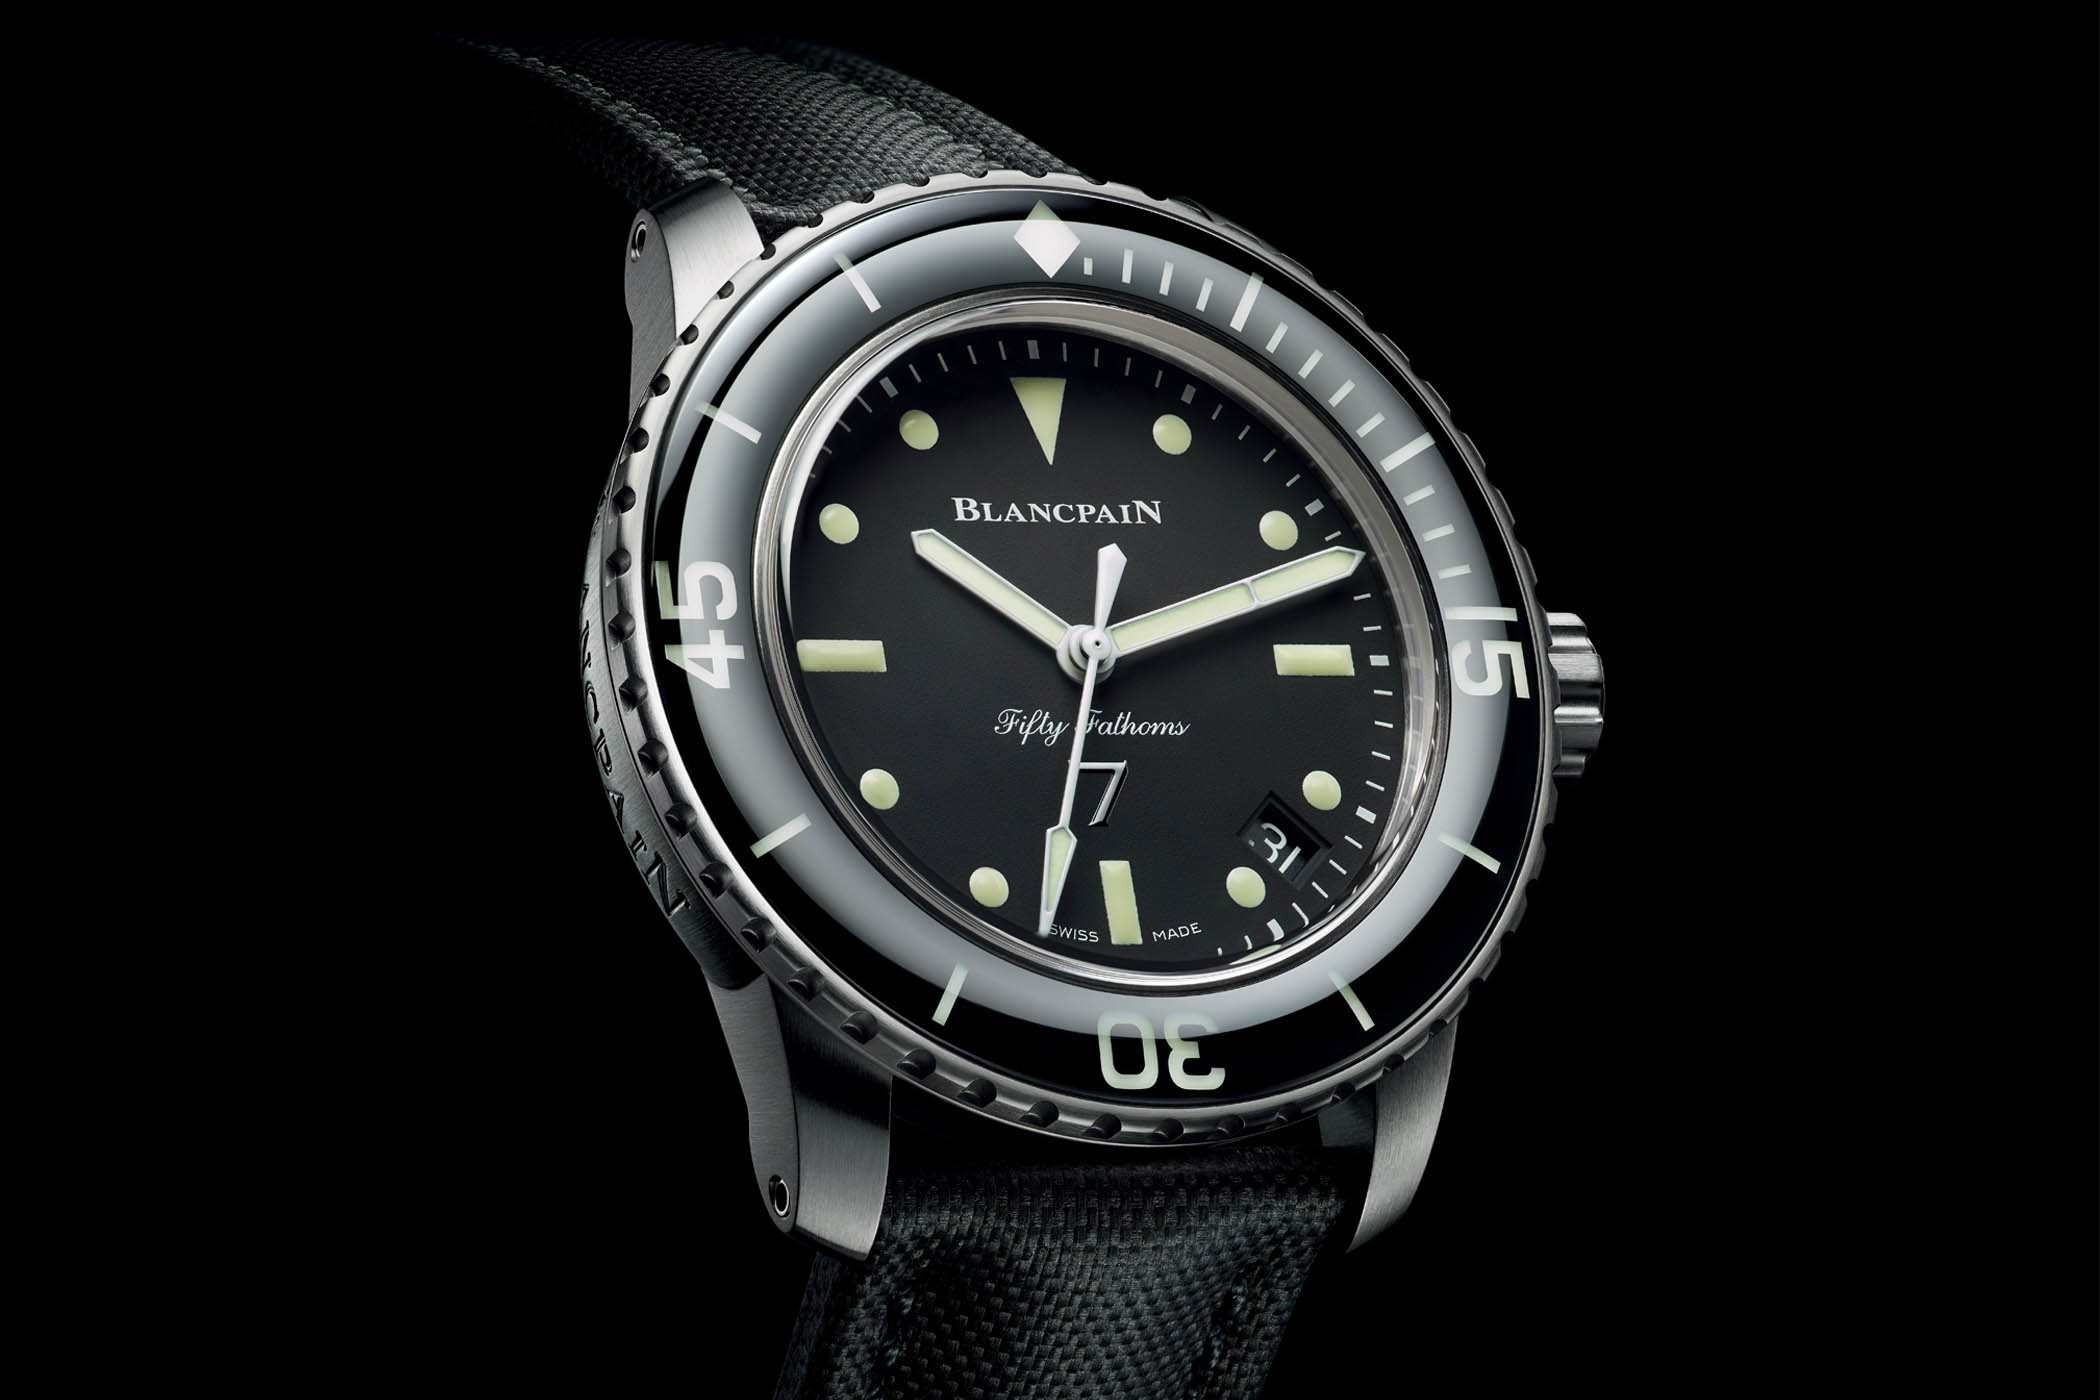 Blancpain Fifty Fathoms Nageurs de Combat Limited Edition